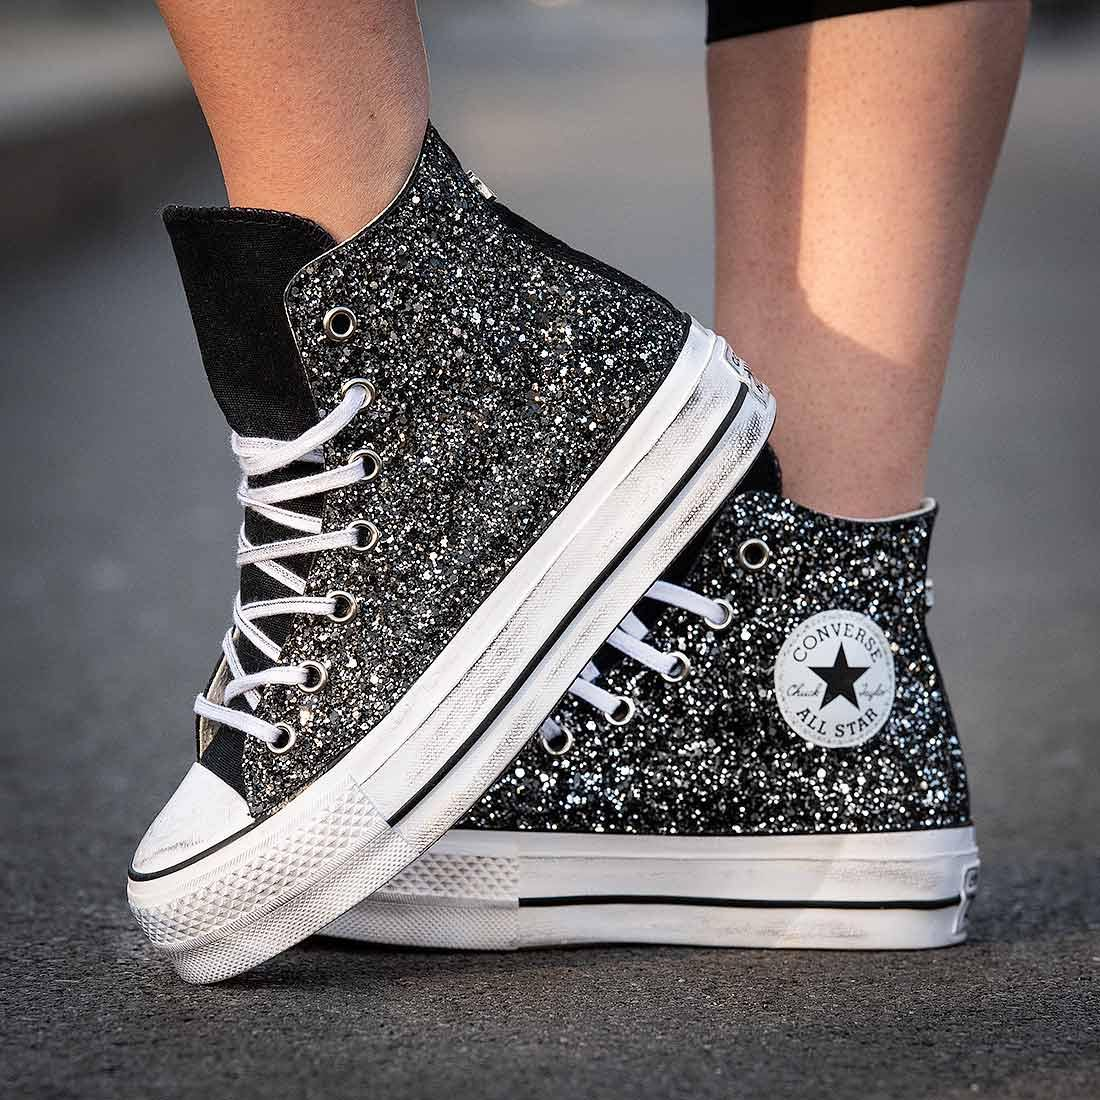 finest selection f3fd1 93488 Converse All Star Alte Glitterate Nere - Suola Alta Platform